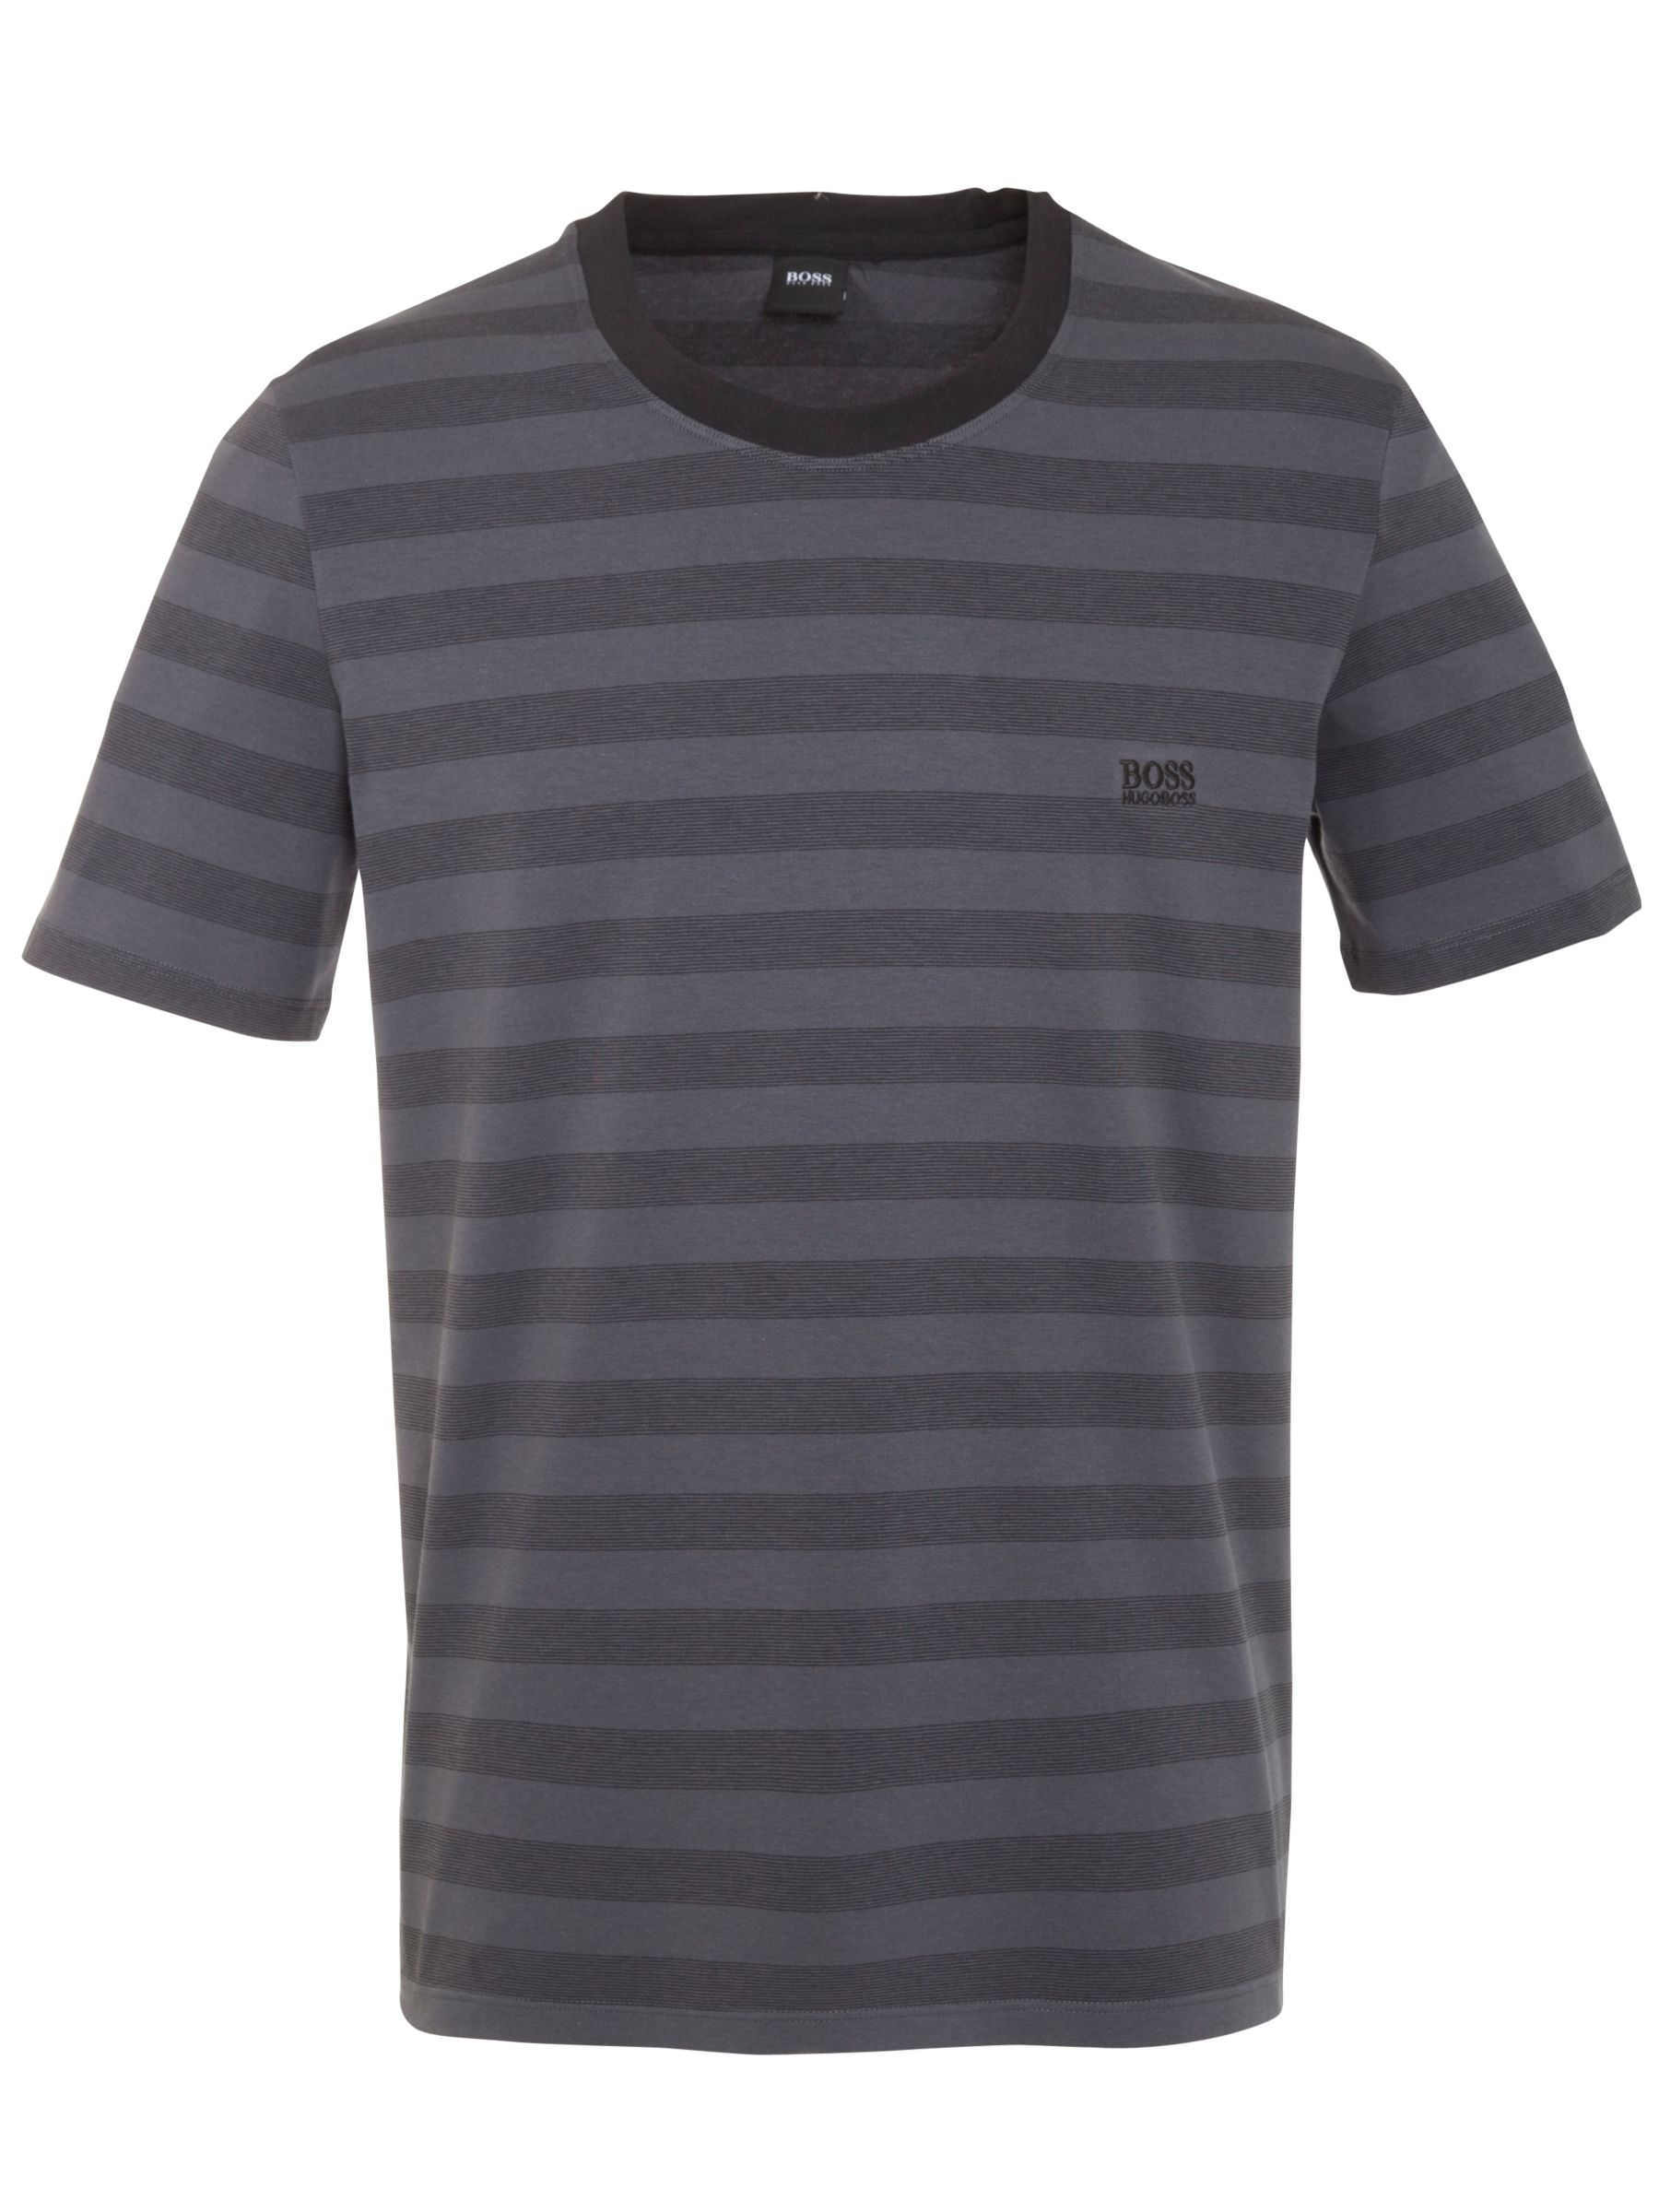 Hugo Boss Inno Stripe Lounge T-Shirt